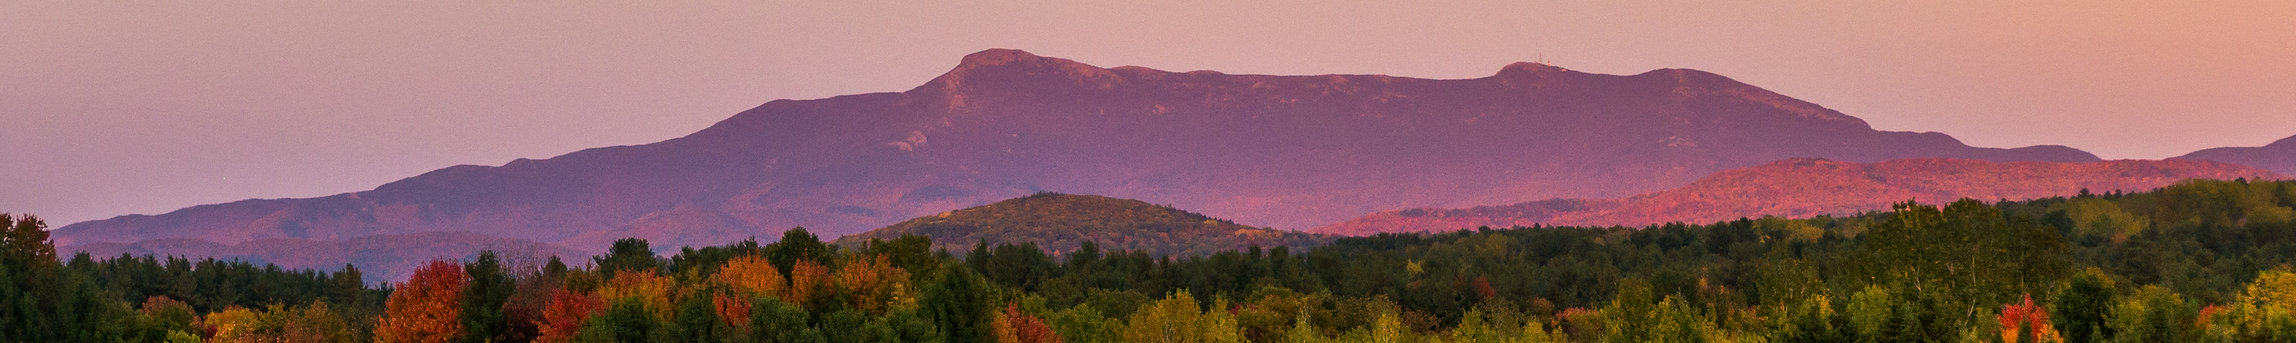 Mount Mansfied view from Trinity Baptist School in Williston, Vermont